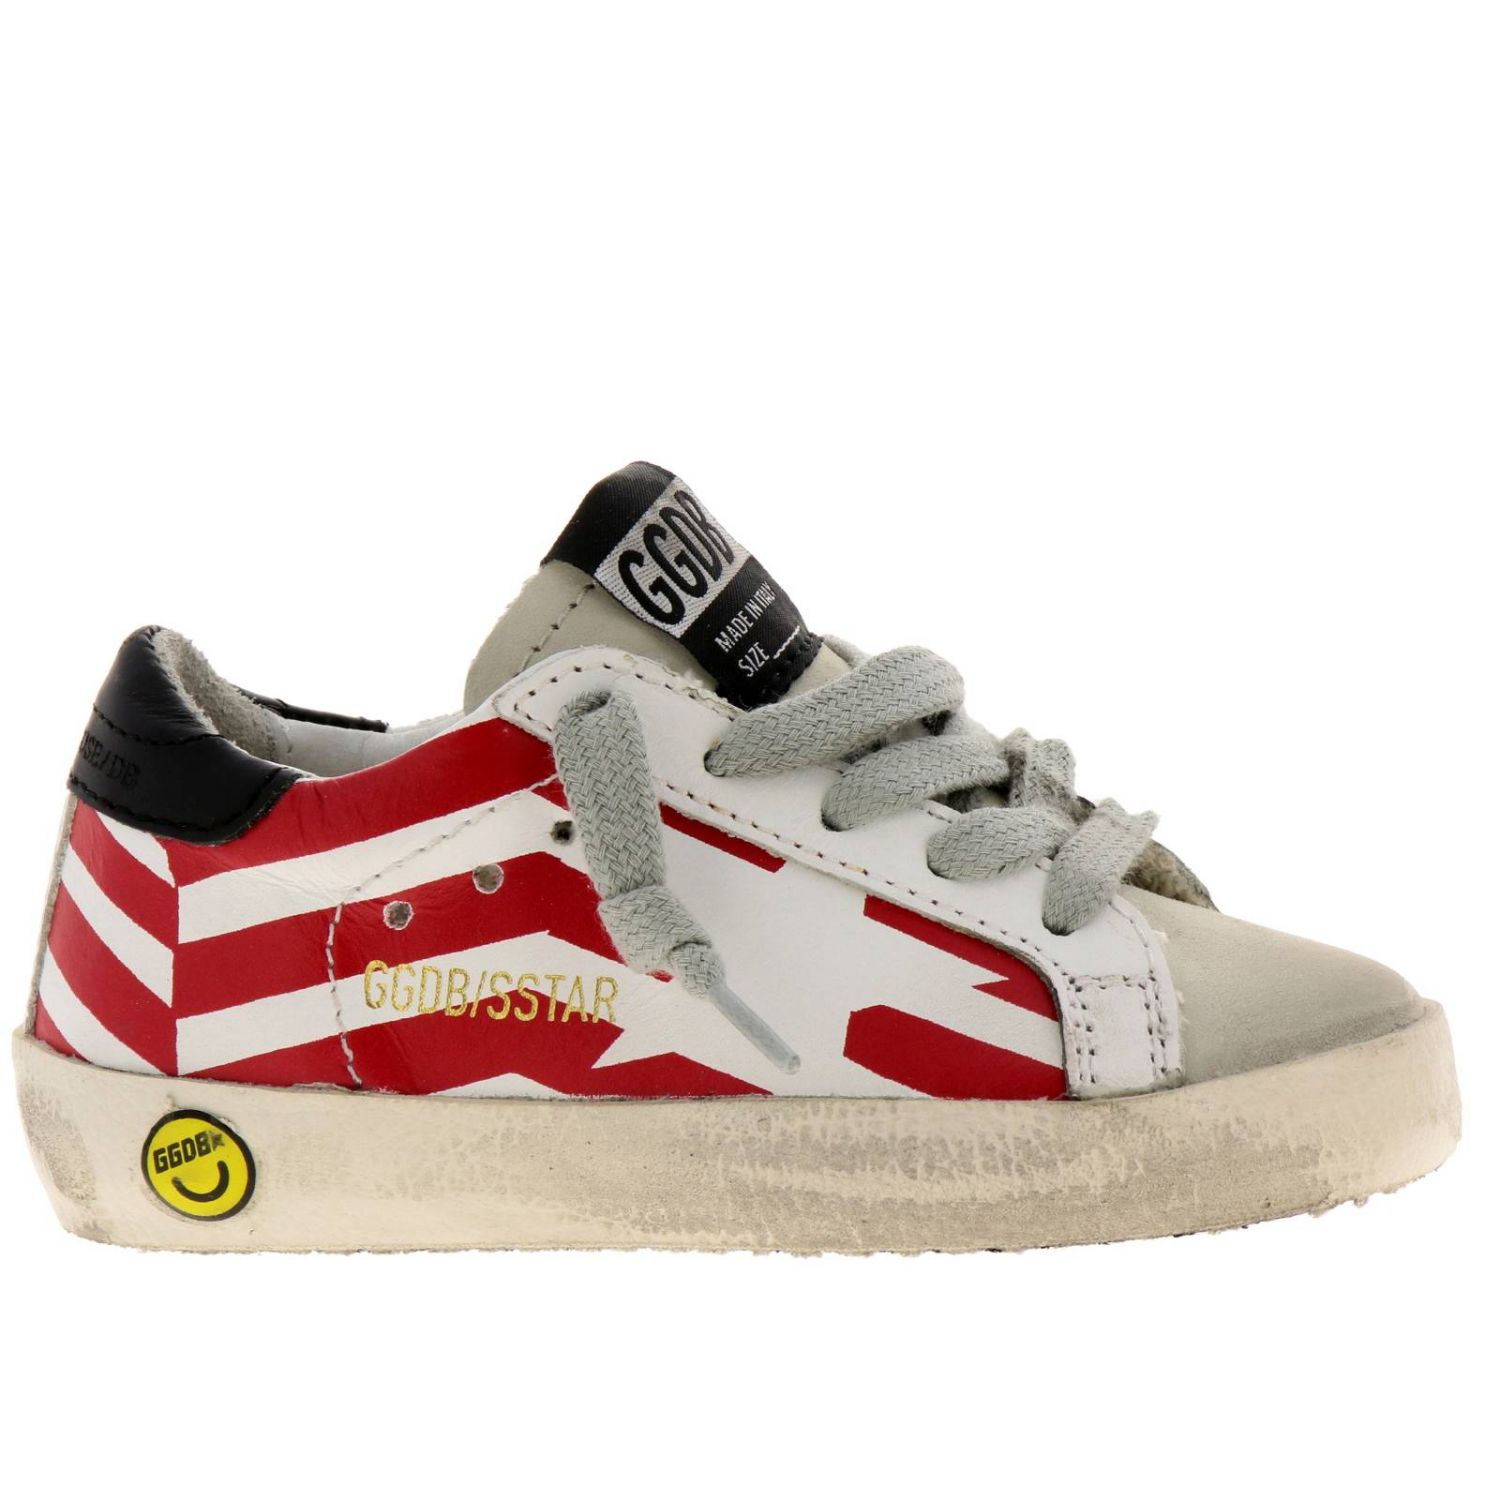 Sneakers Superstar Golden Goose in pelle a righe con stella stampata bianco 1